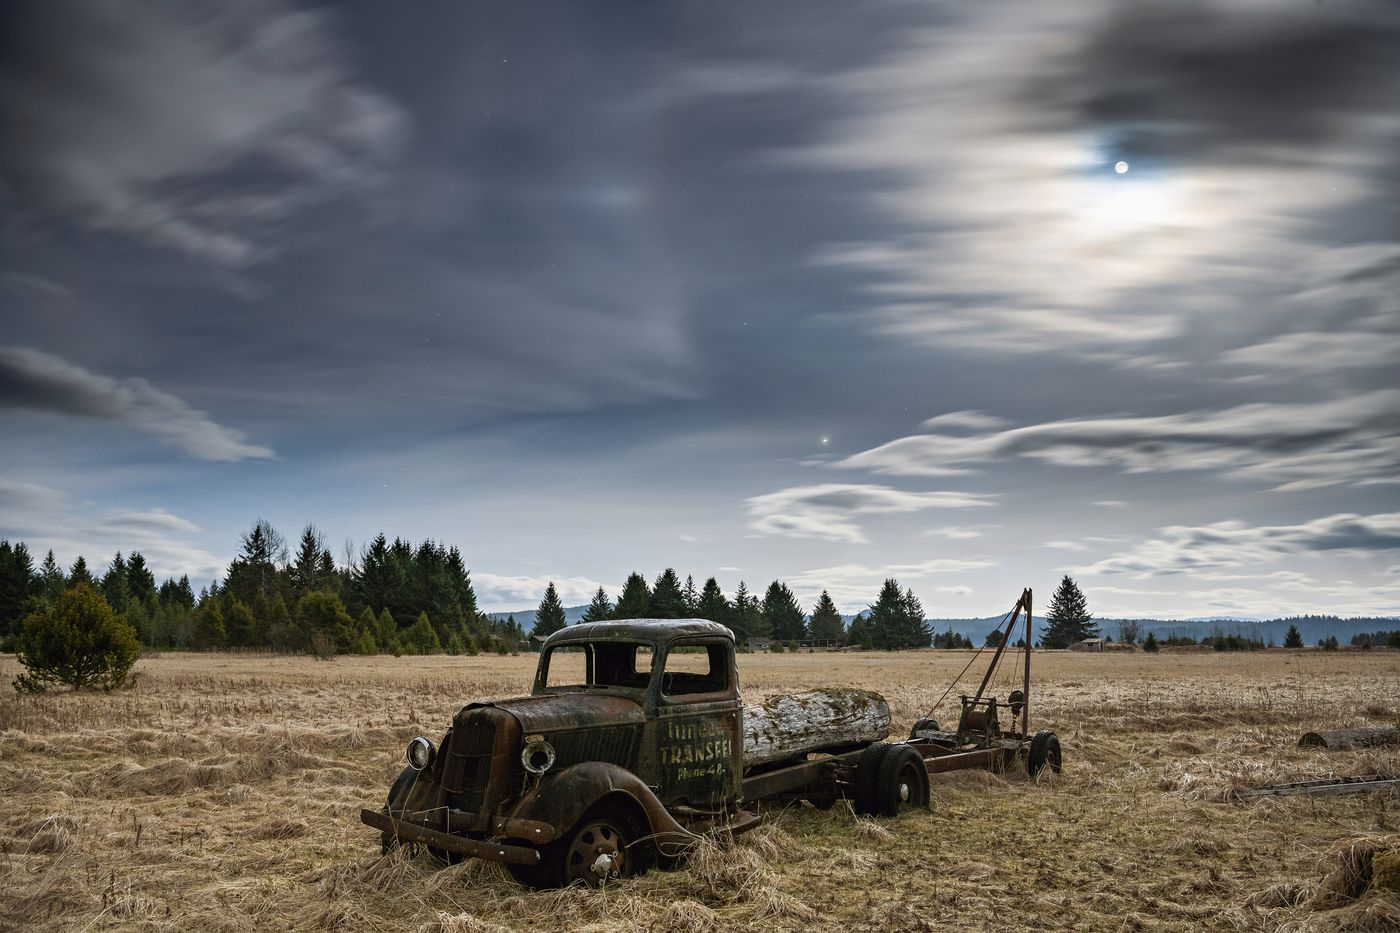 A nearly full moon illuminates the clouds and night sky above an old truck in a field on the edge of Gustavus, Alaska, April 2018. The tiny town serves as the gateway to Glacier Bay National Park. (Christopher Miller/The New York Times)